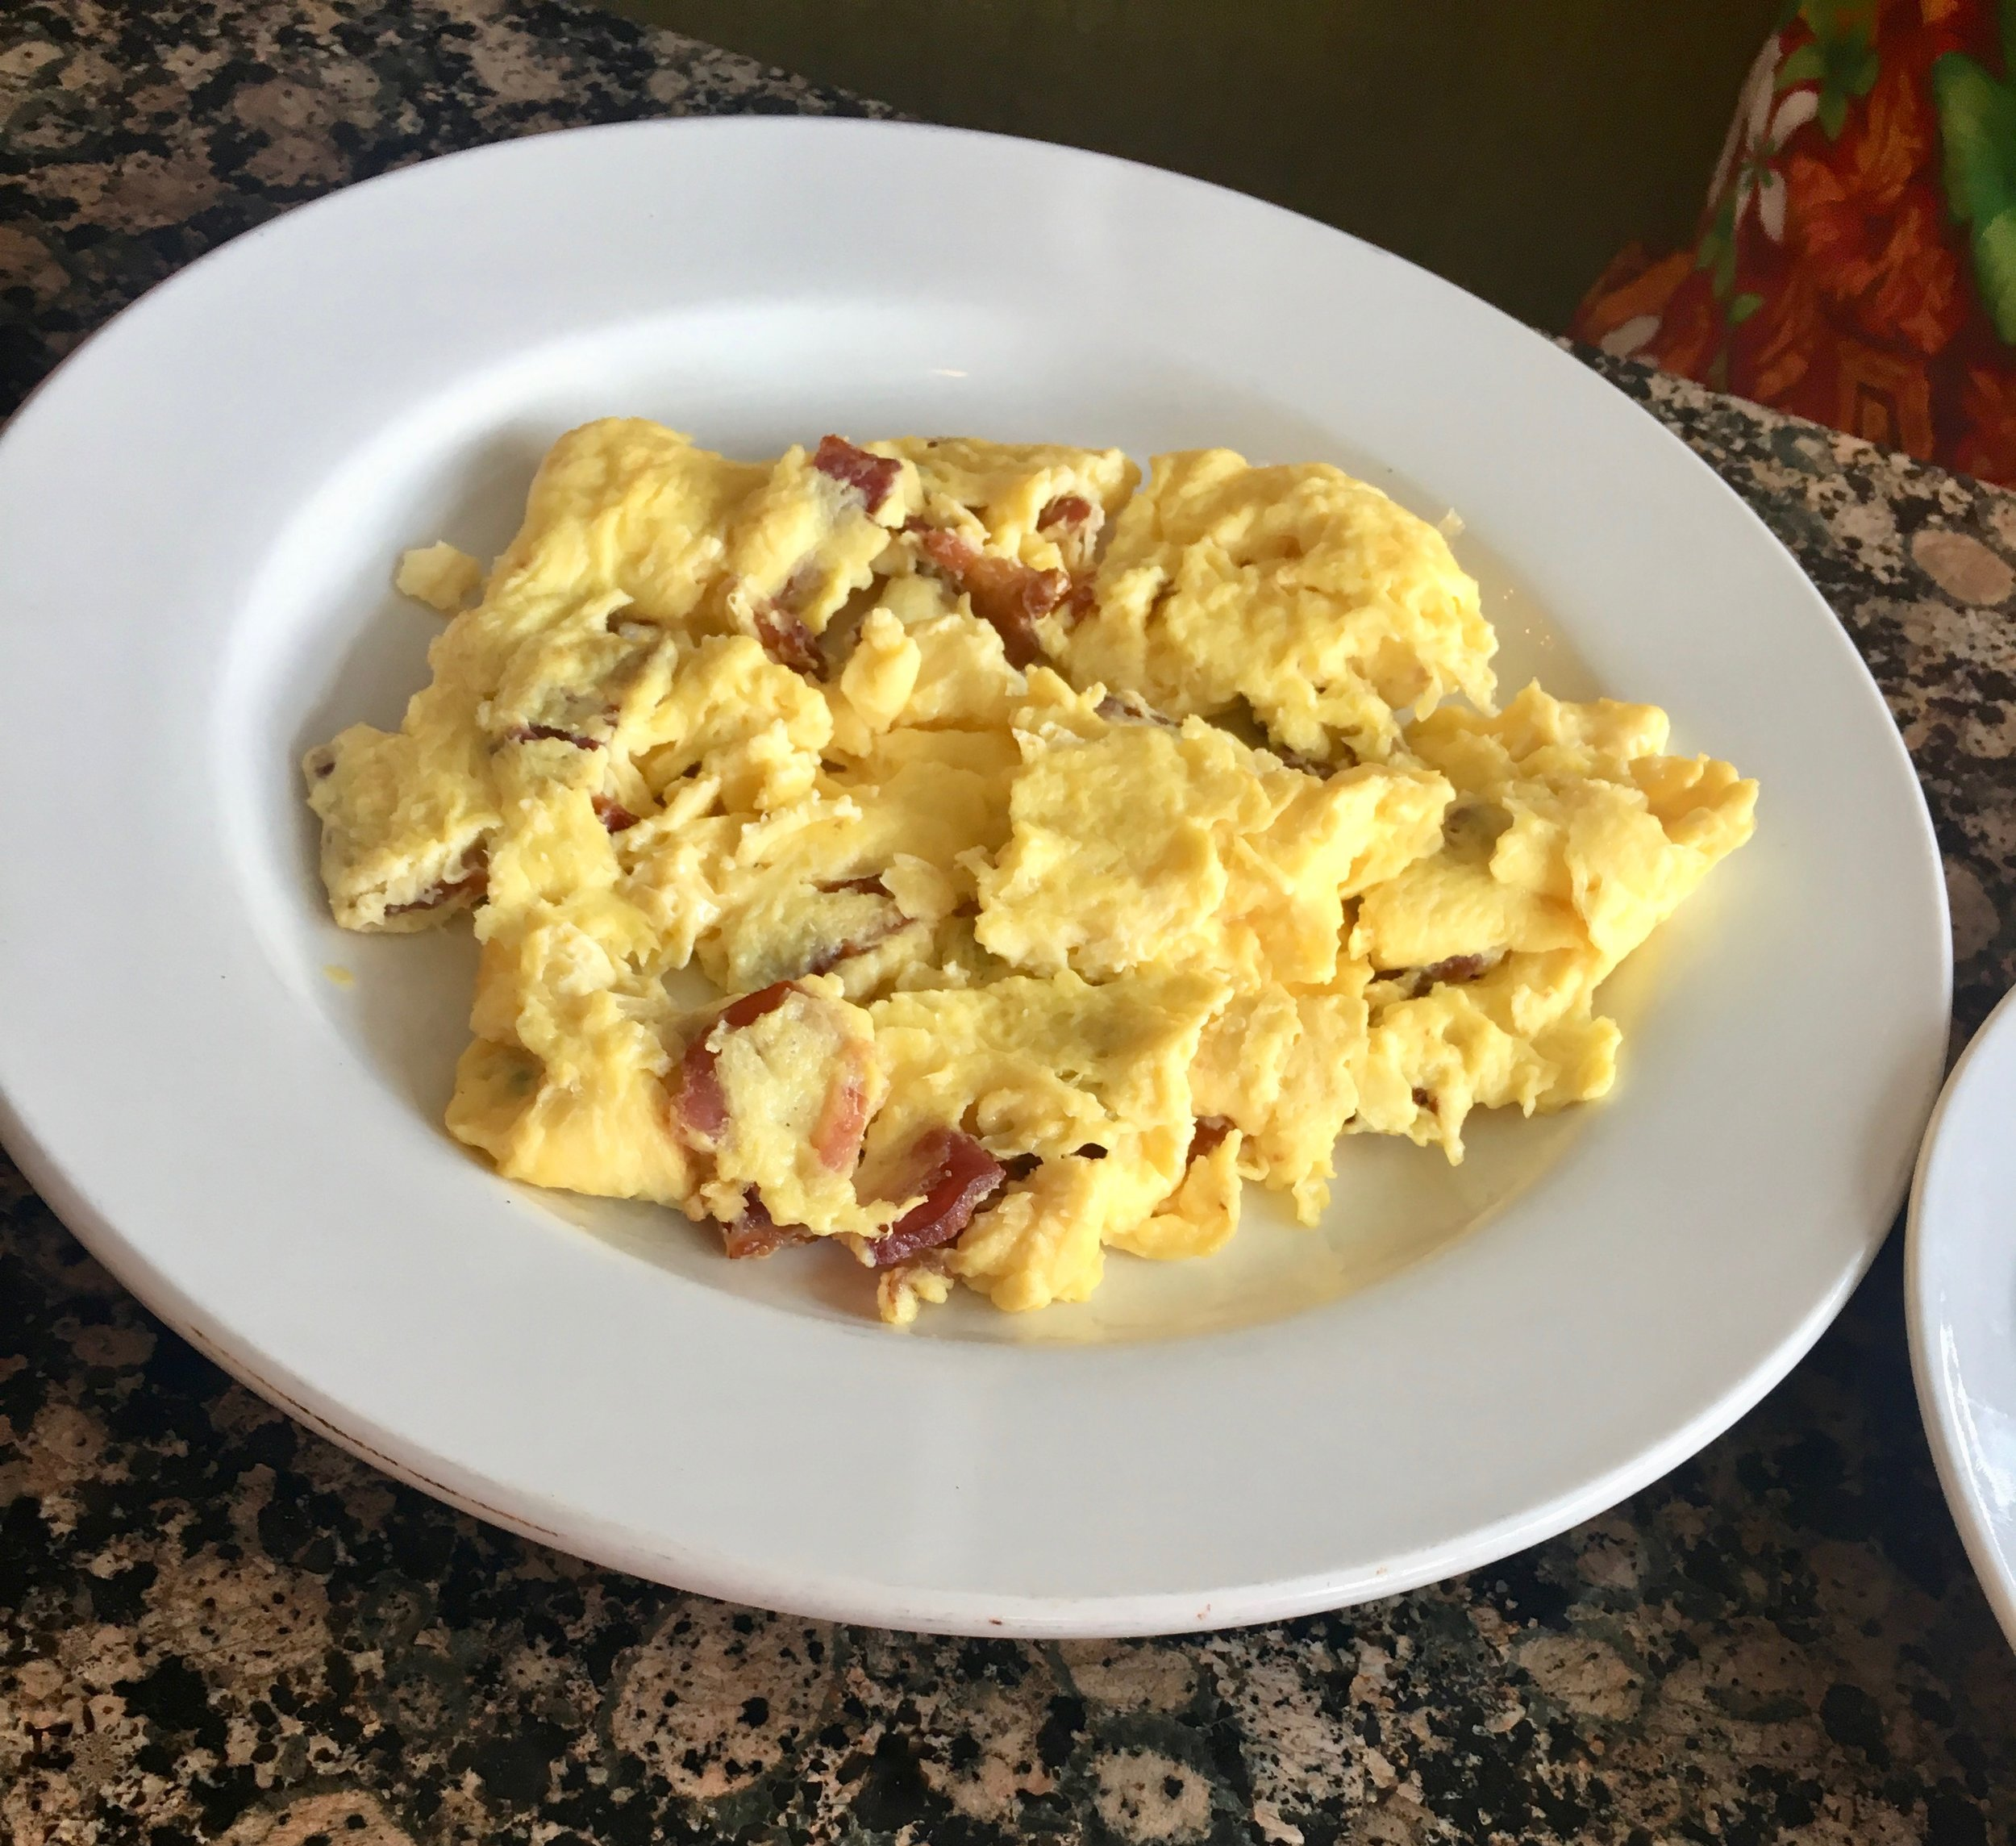 congo-room-eggs-bacon.jpg